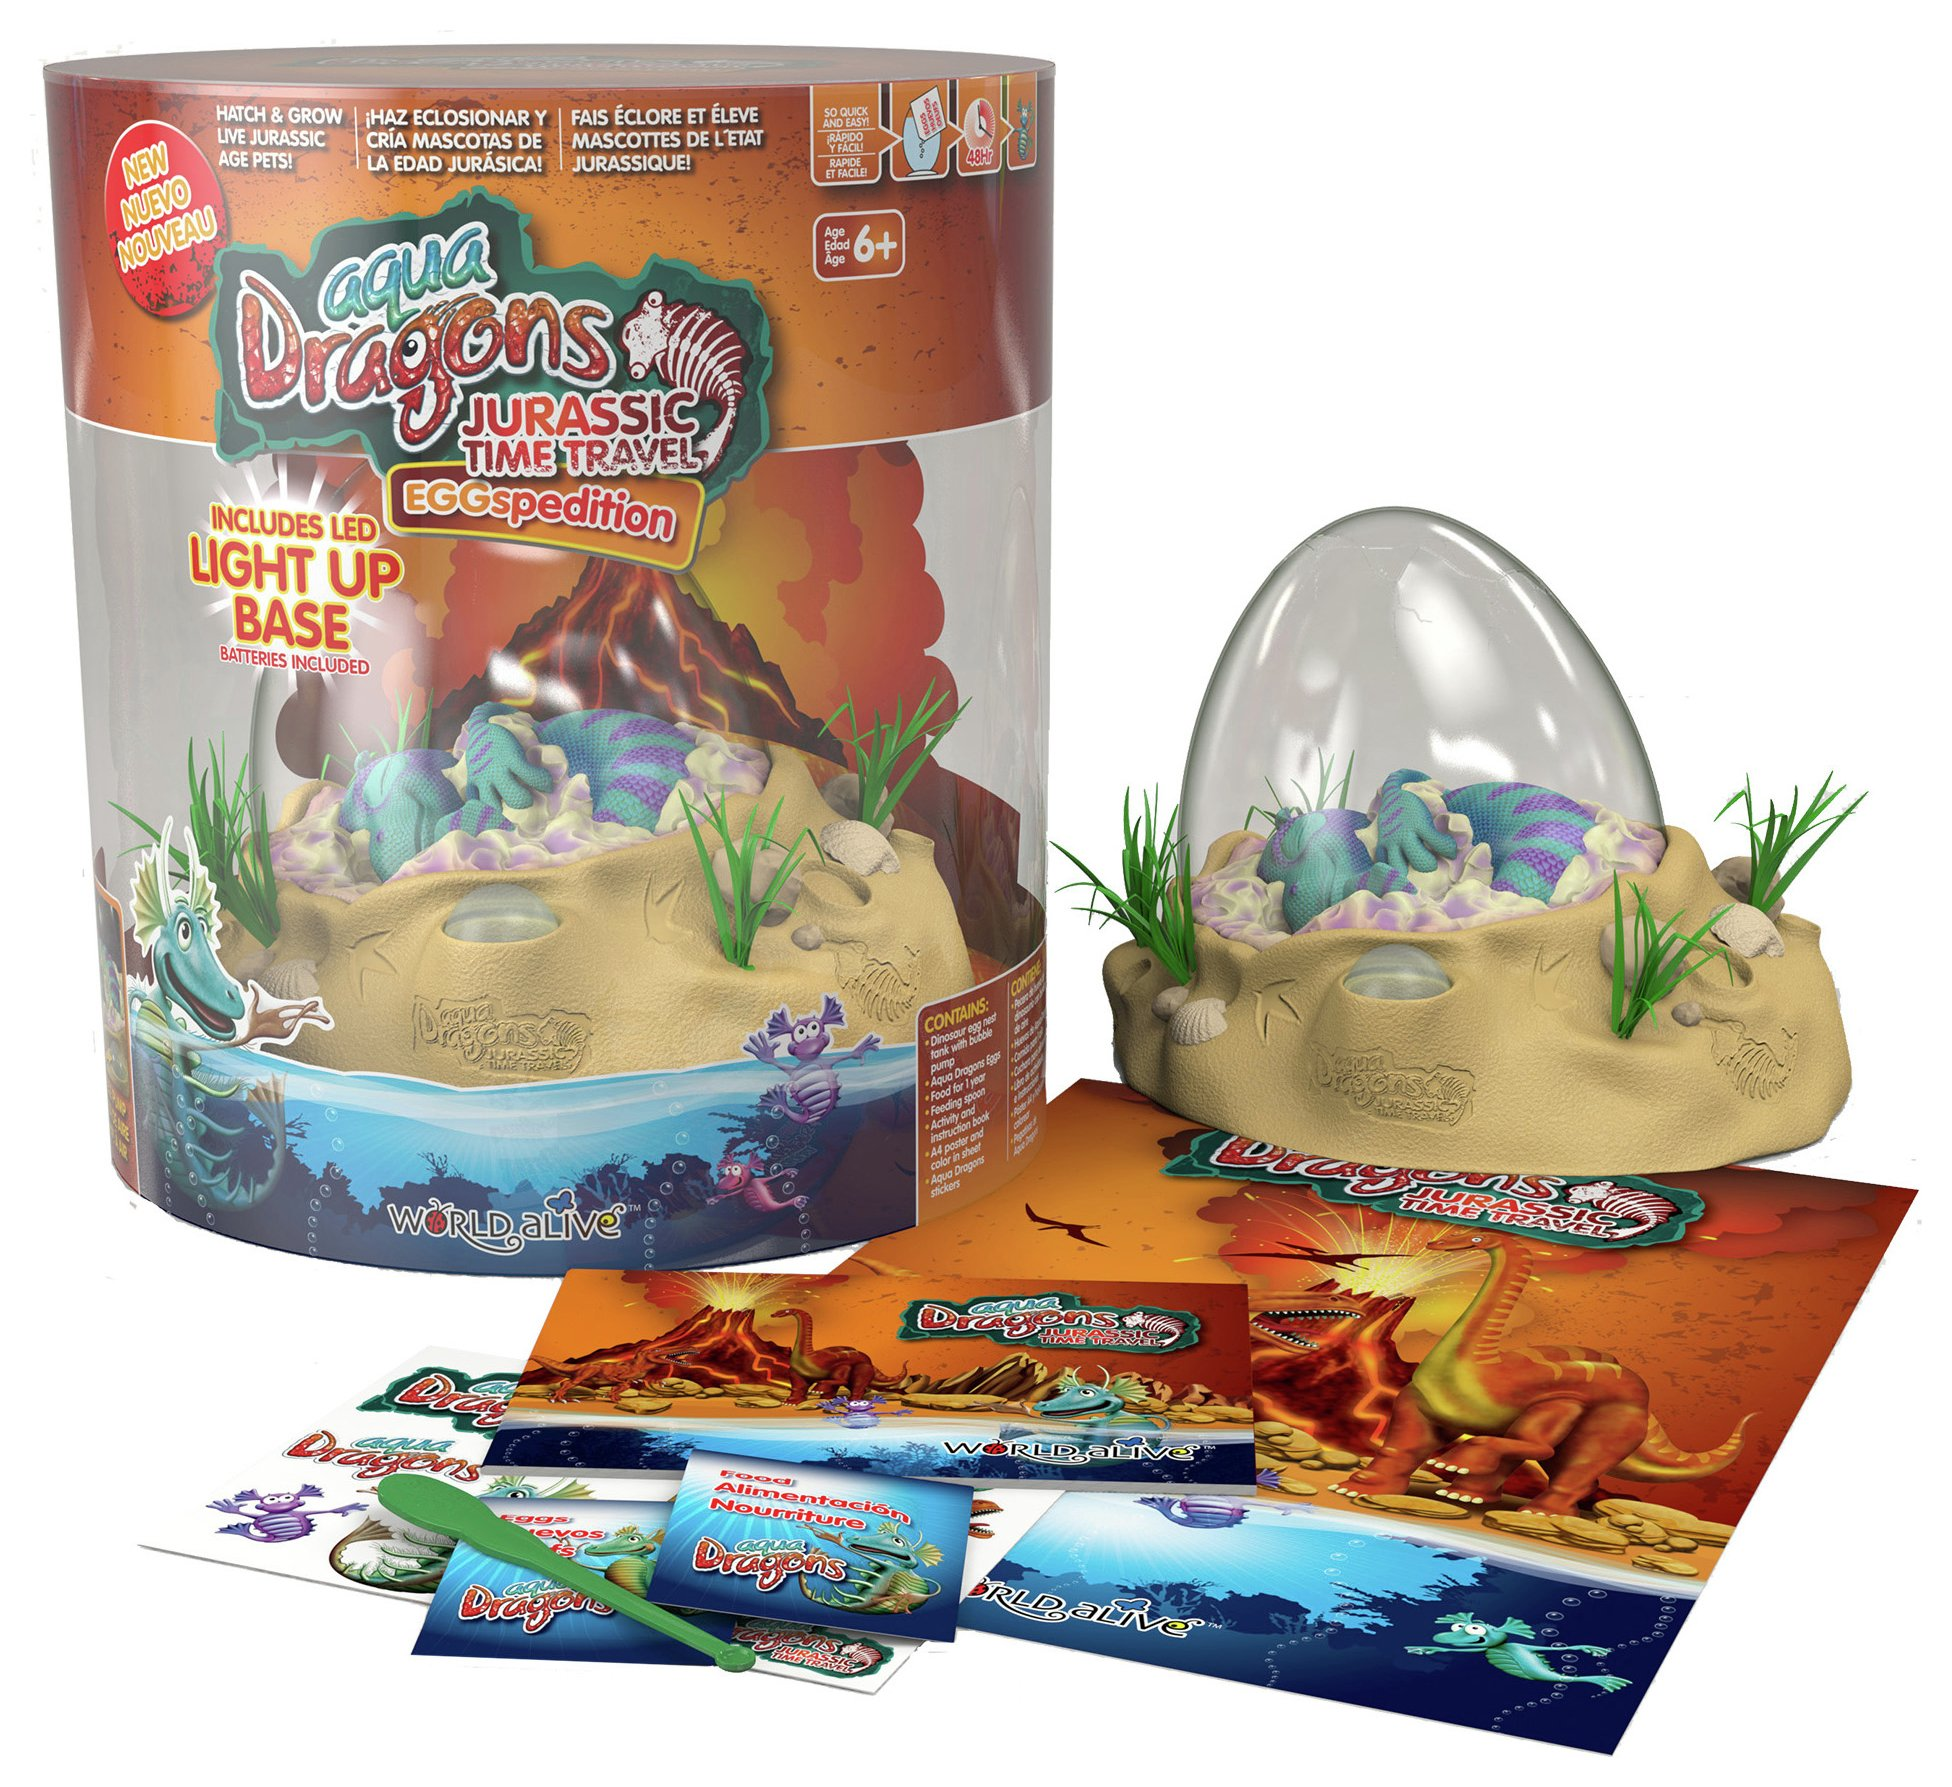 Image of Aqua Dragons Jurassic eGGspedition.